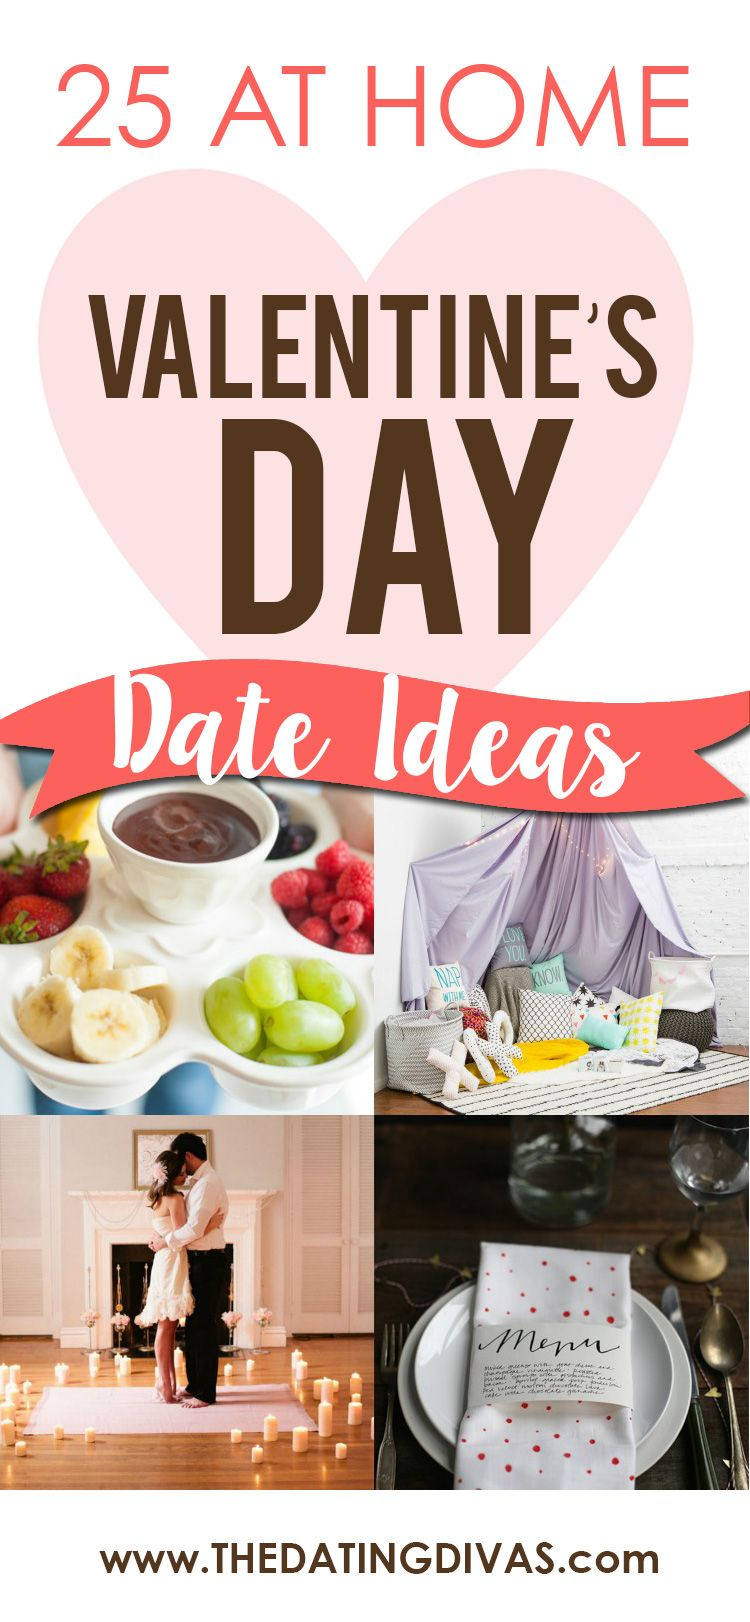 The Top Valentine S Day Date Ideas Holidays Gift And Holiday Fun